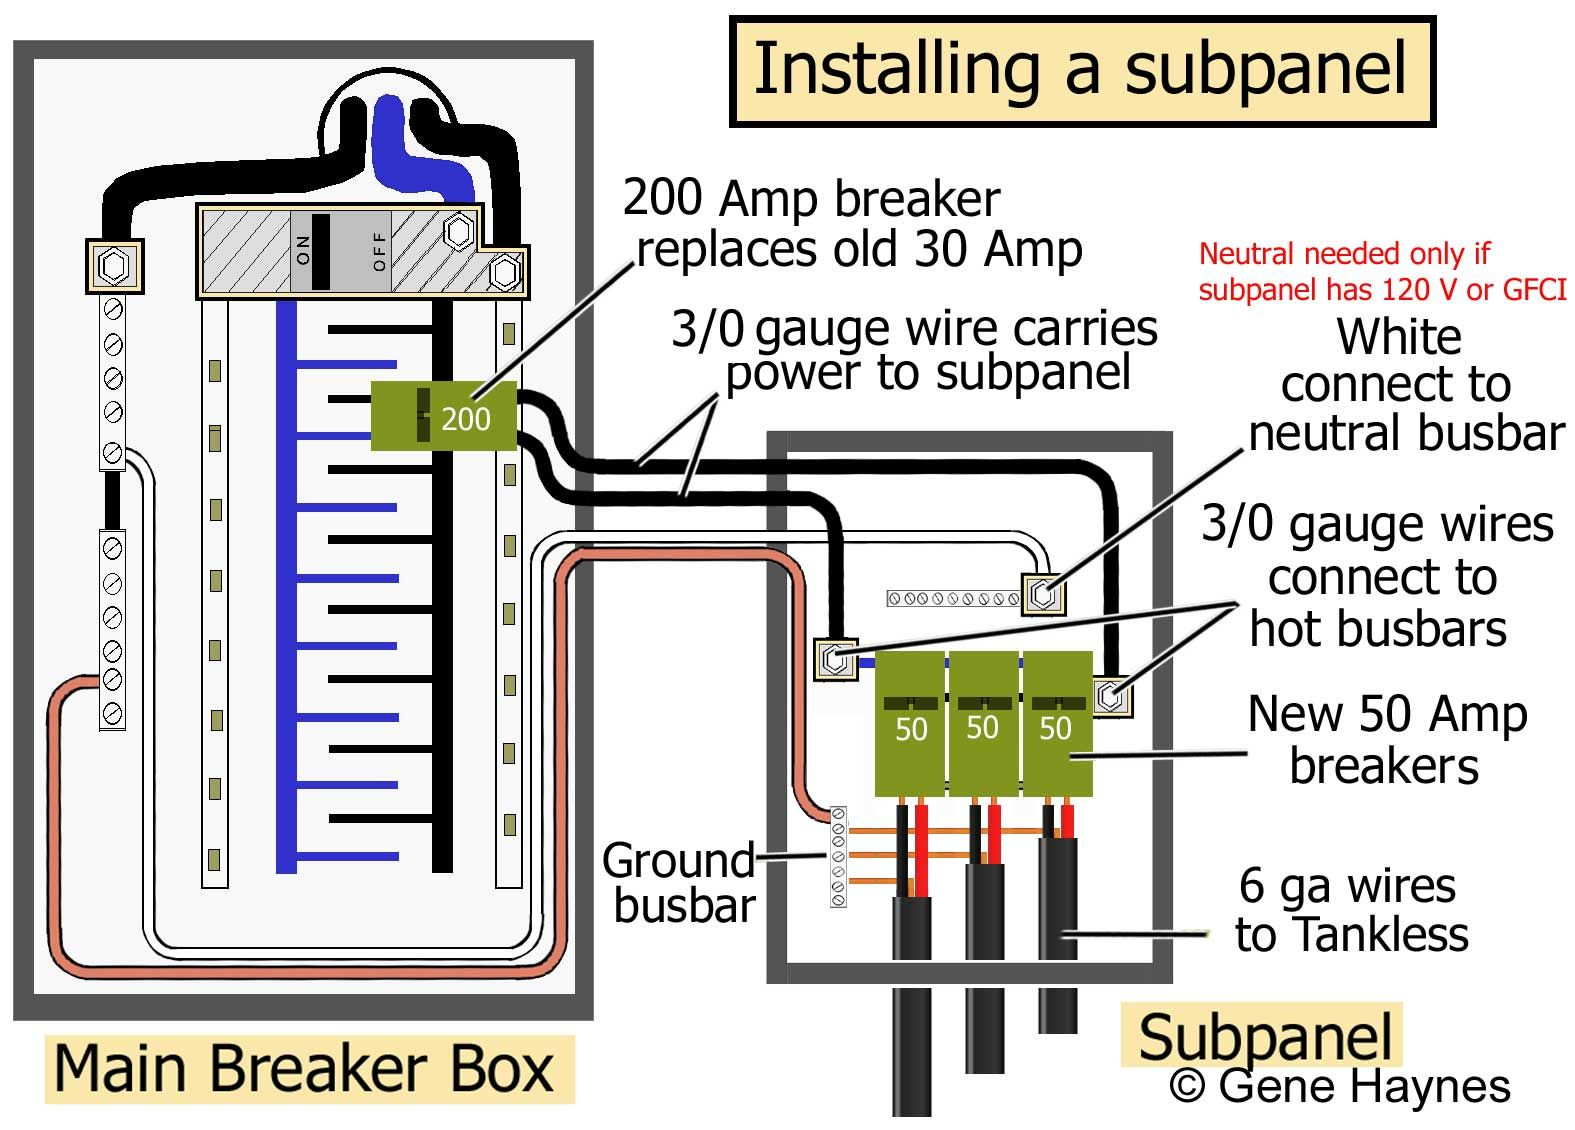 Main Lug Wiring Diagram Just Another Blog Electrical Load Center Diagrams How To Install A Subpanel Rh Pinterest Com Panel